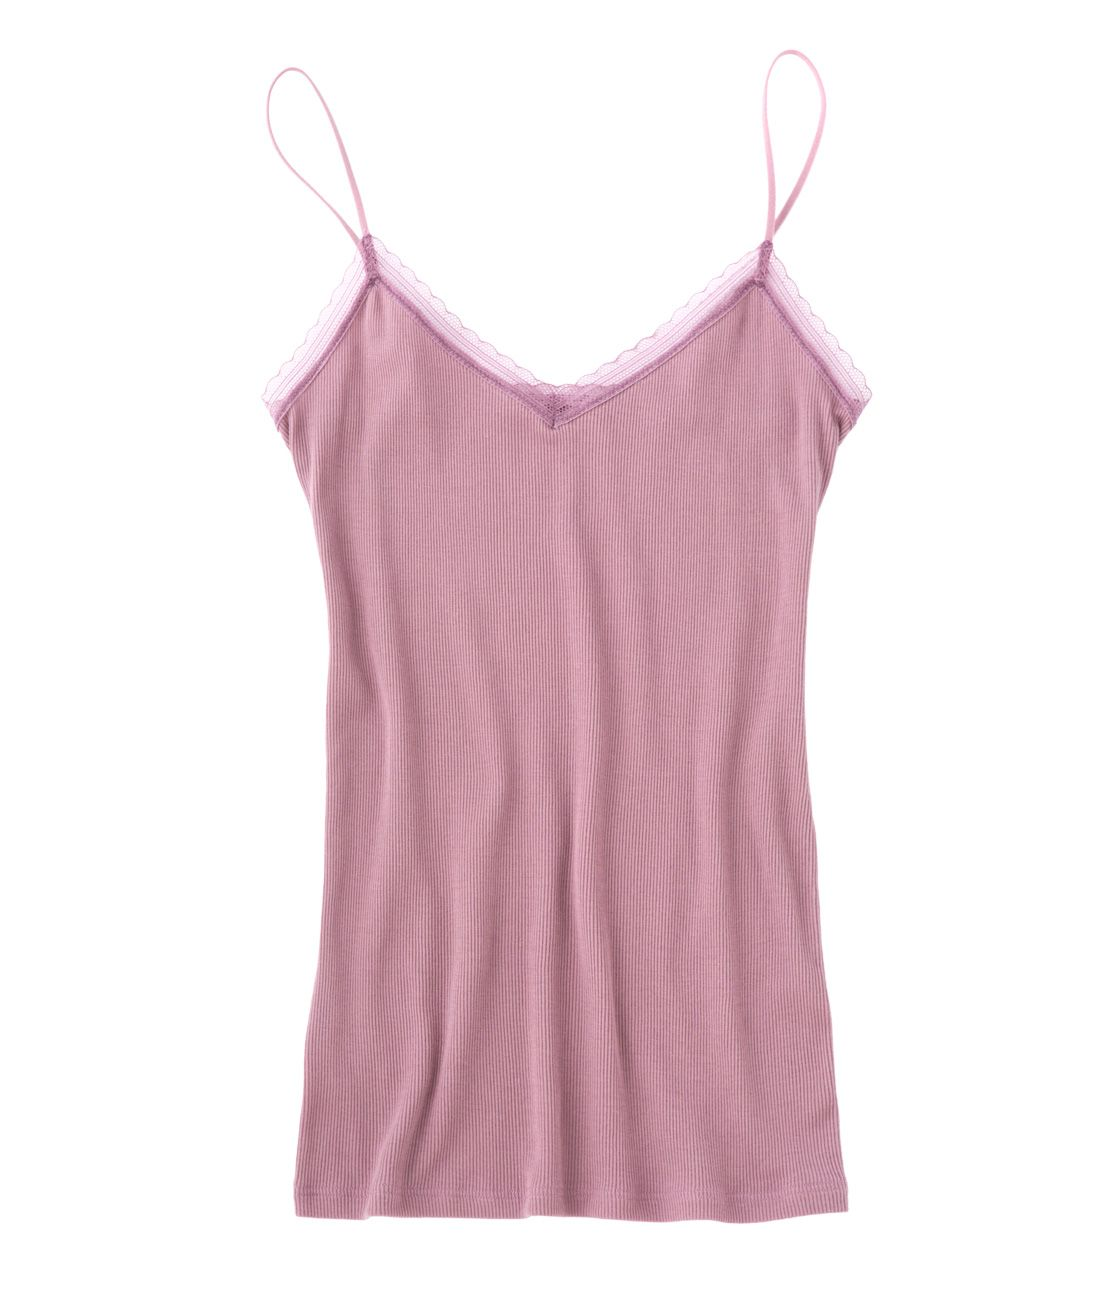 Cotton rib cami